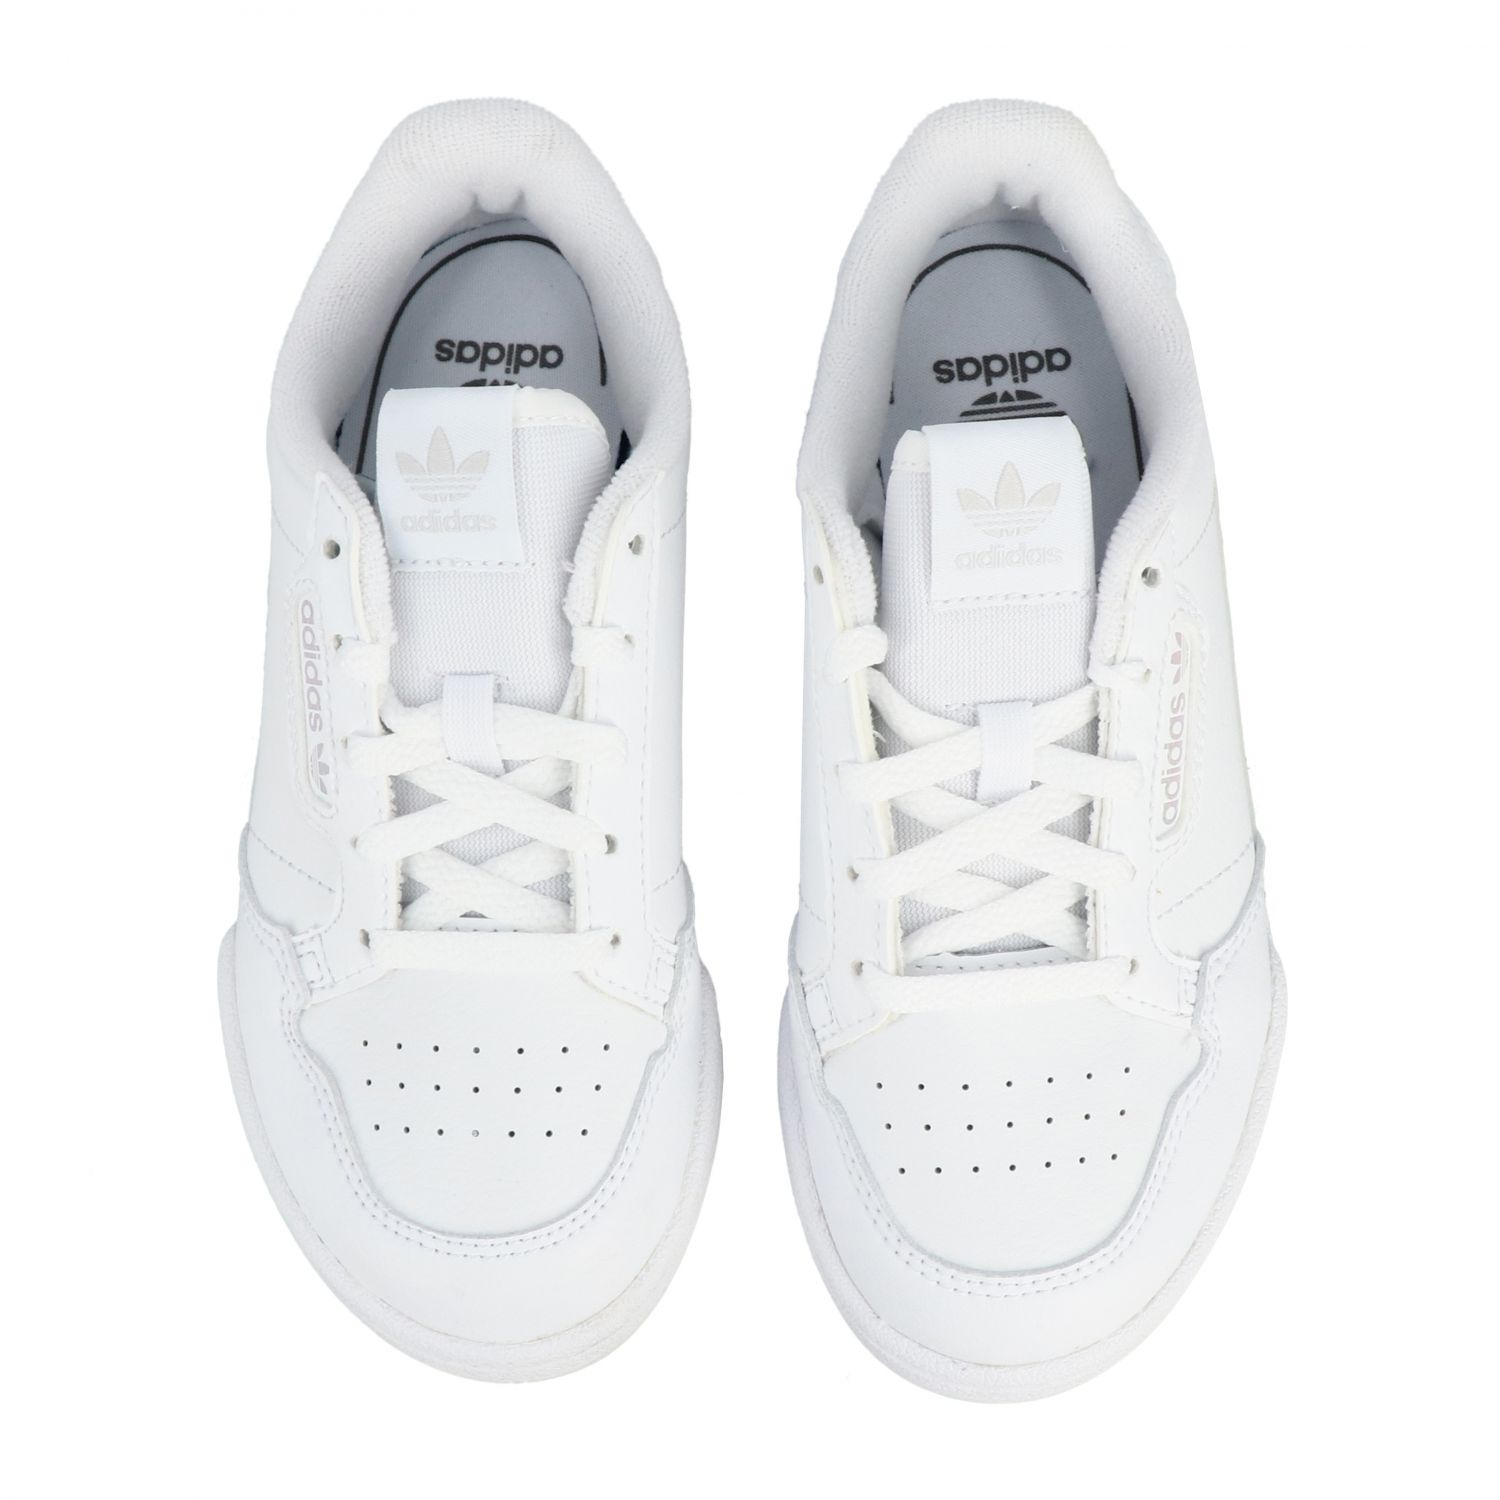 Scarpe Adidas Originals: Sneakers Continental 80 Adidas Originals in pelle bianco 3